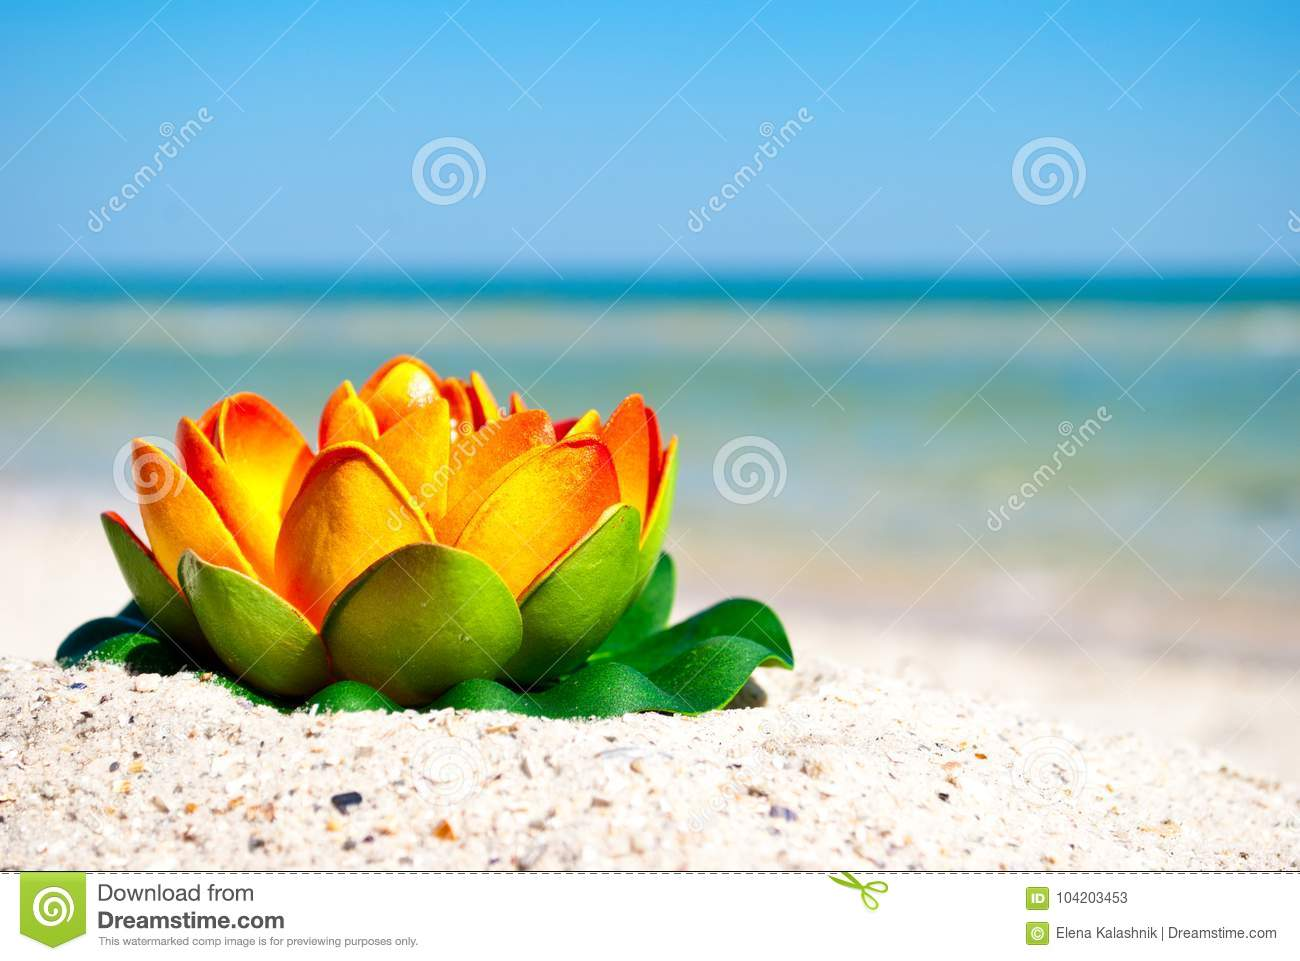 Orange lotus flower with green leaves lies on the sand on a royalty free stock photo download orange lotus flower izmirmasajfo Images